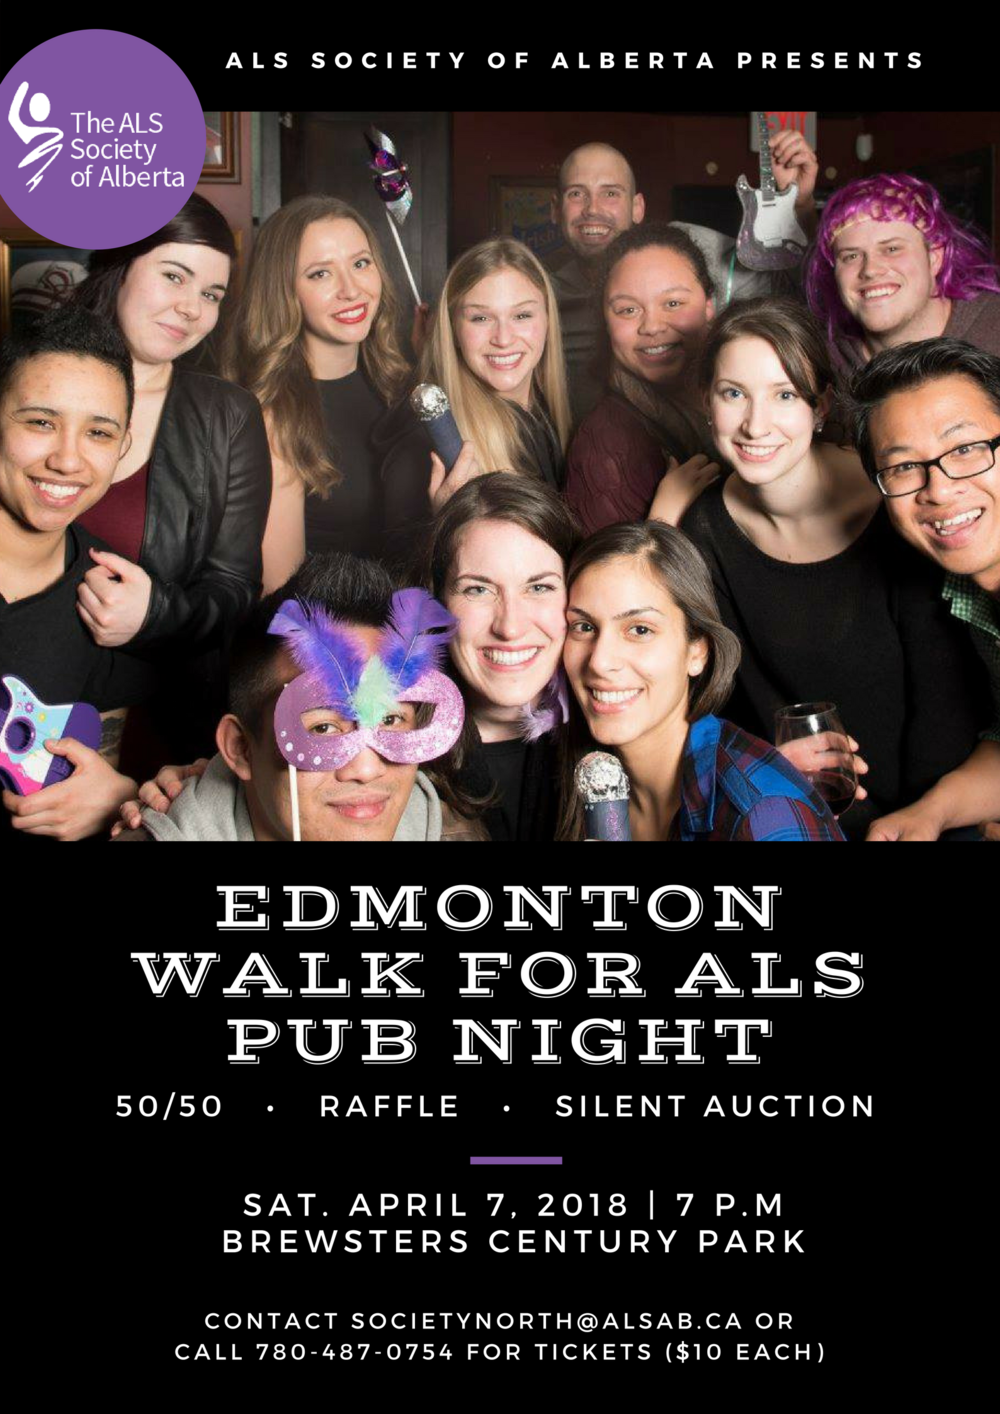 EDMONTON WALK FOR ALS PUB NIGHT.png